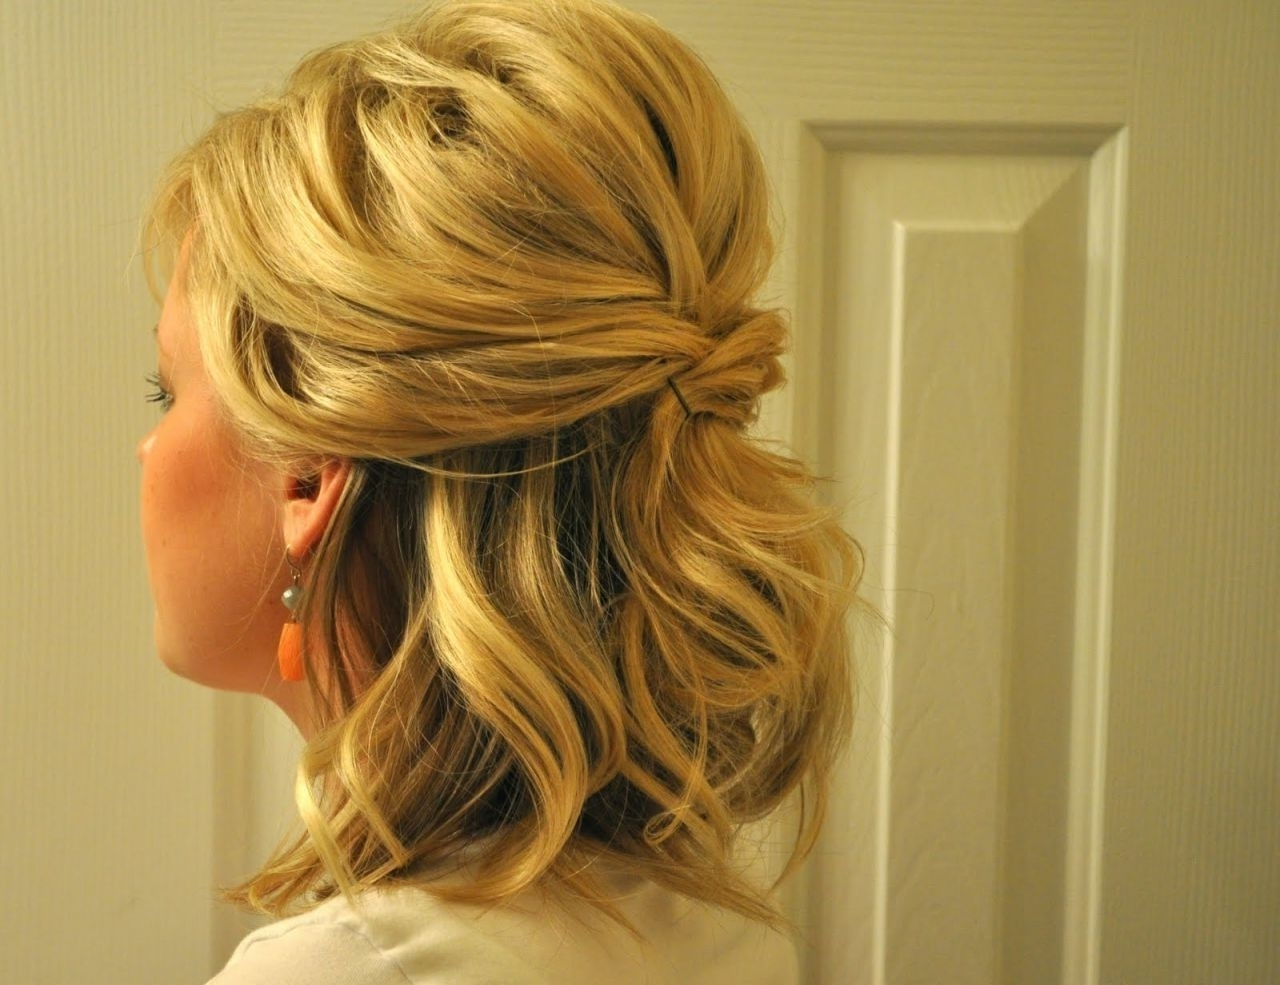 Half Up Wedding Hairstyles Medium Length Hair New Curly Half Updo Inside Half Hair Updos For Medium Length Hair (View 9 of 15)